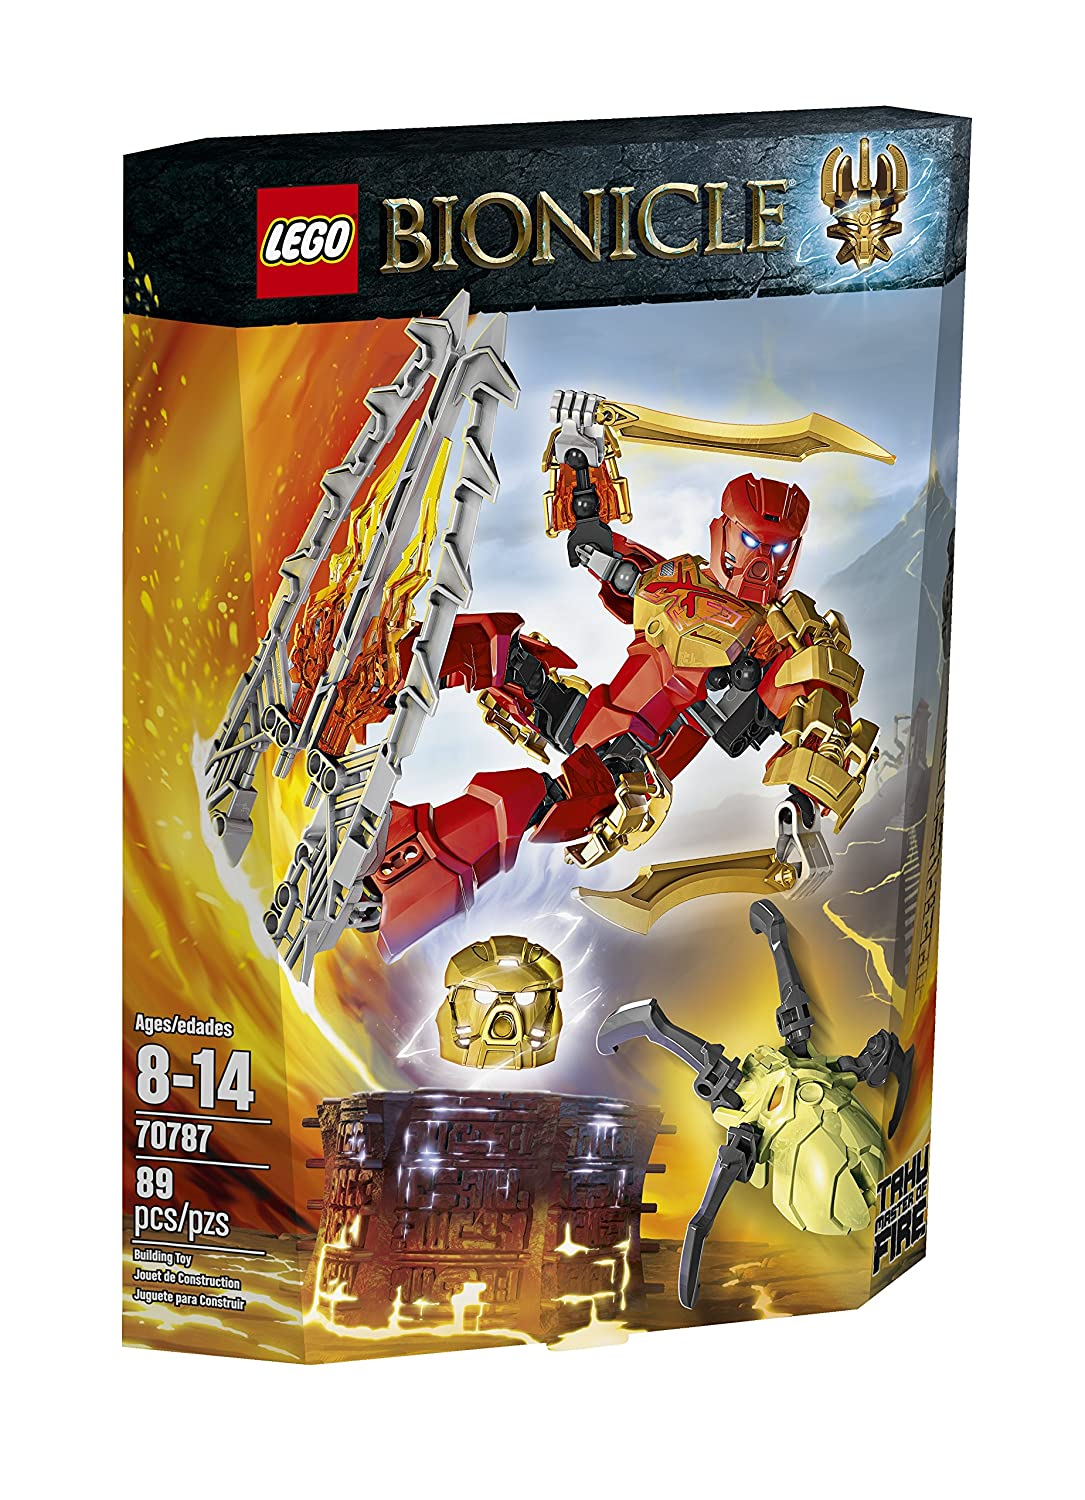 Top 15 Best Lego BIONICLE Sets Reviews in 2019 12